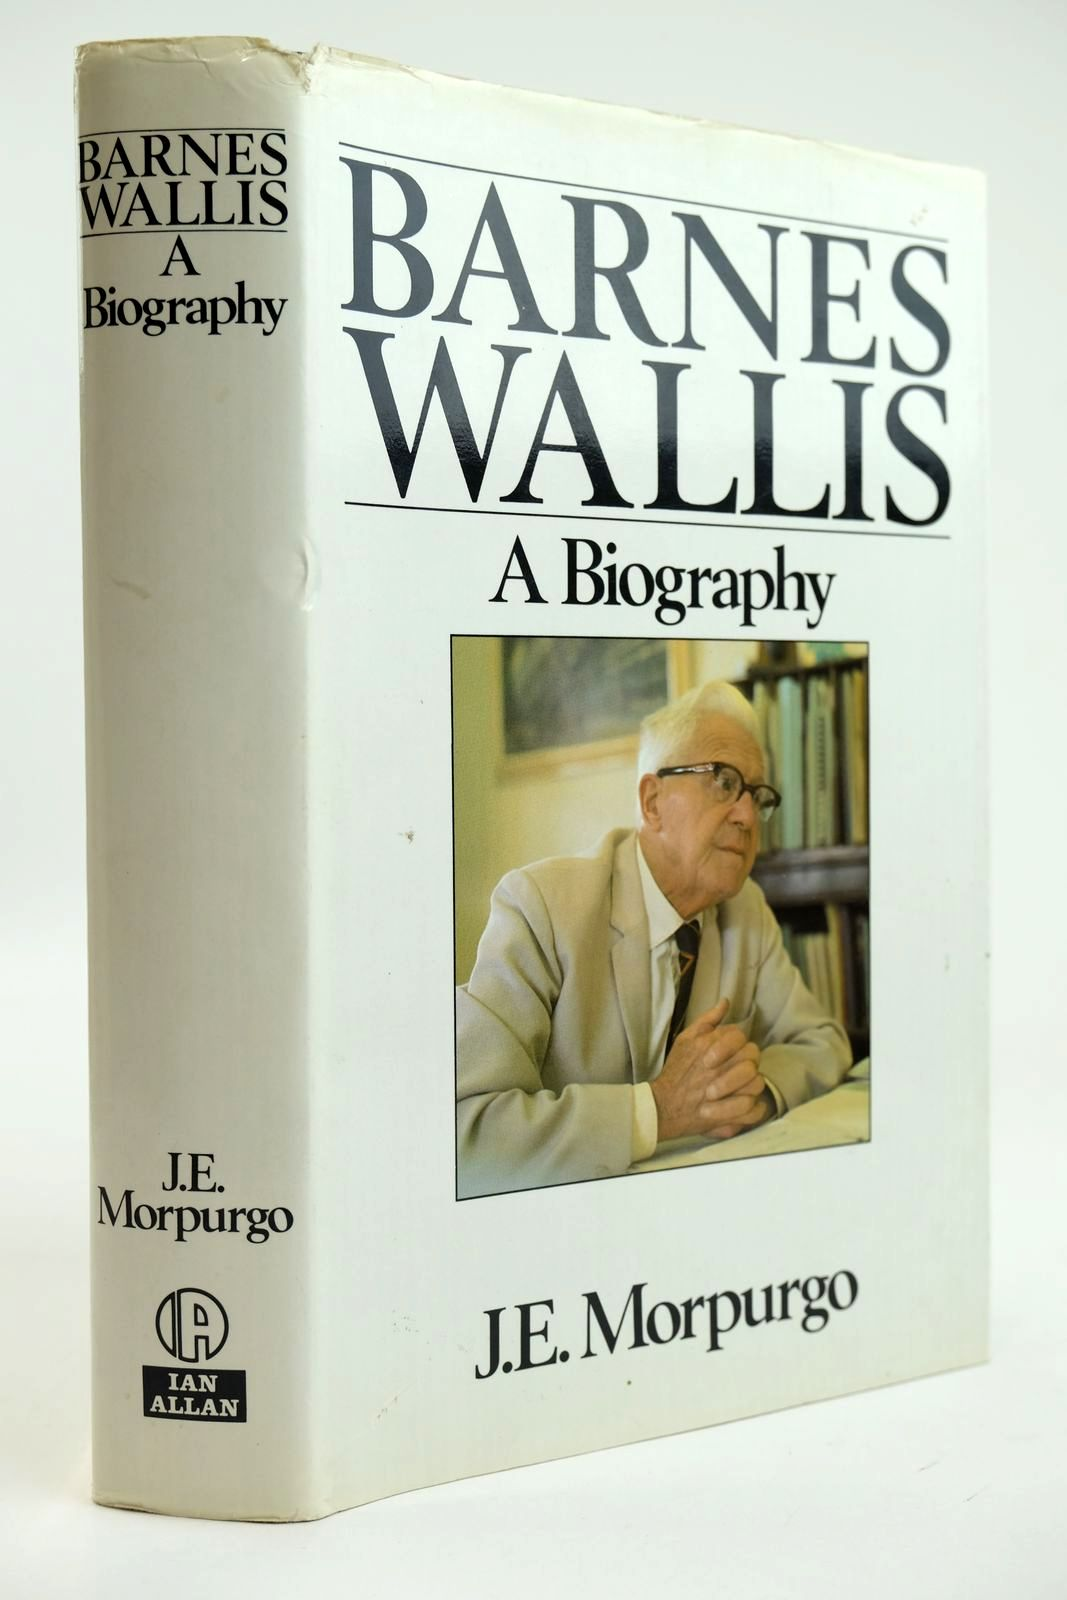 Photo of BARNES WALLIS A BIOGRAPHY written by Morpurgo, J.E. published by Ian Allan Ltd. (STOCK CODE: 2132127)  for sale by Stella & Rose's Books